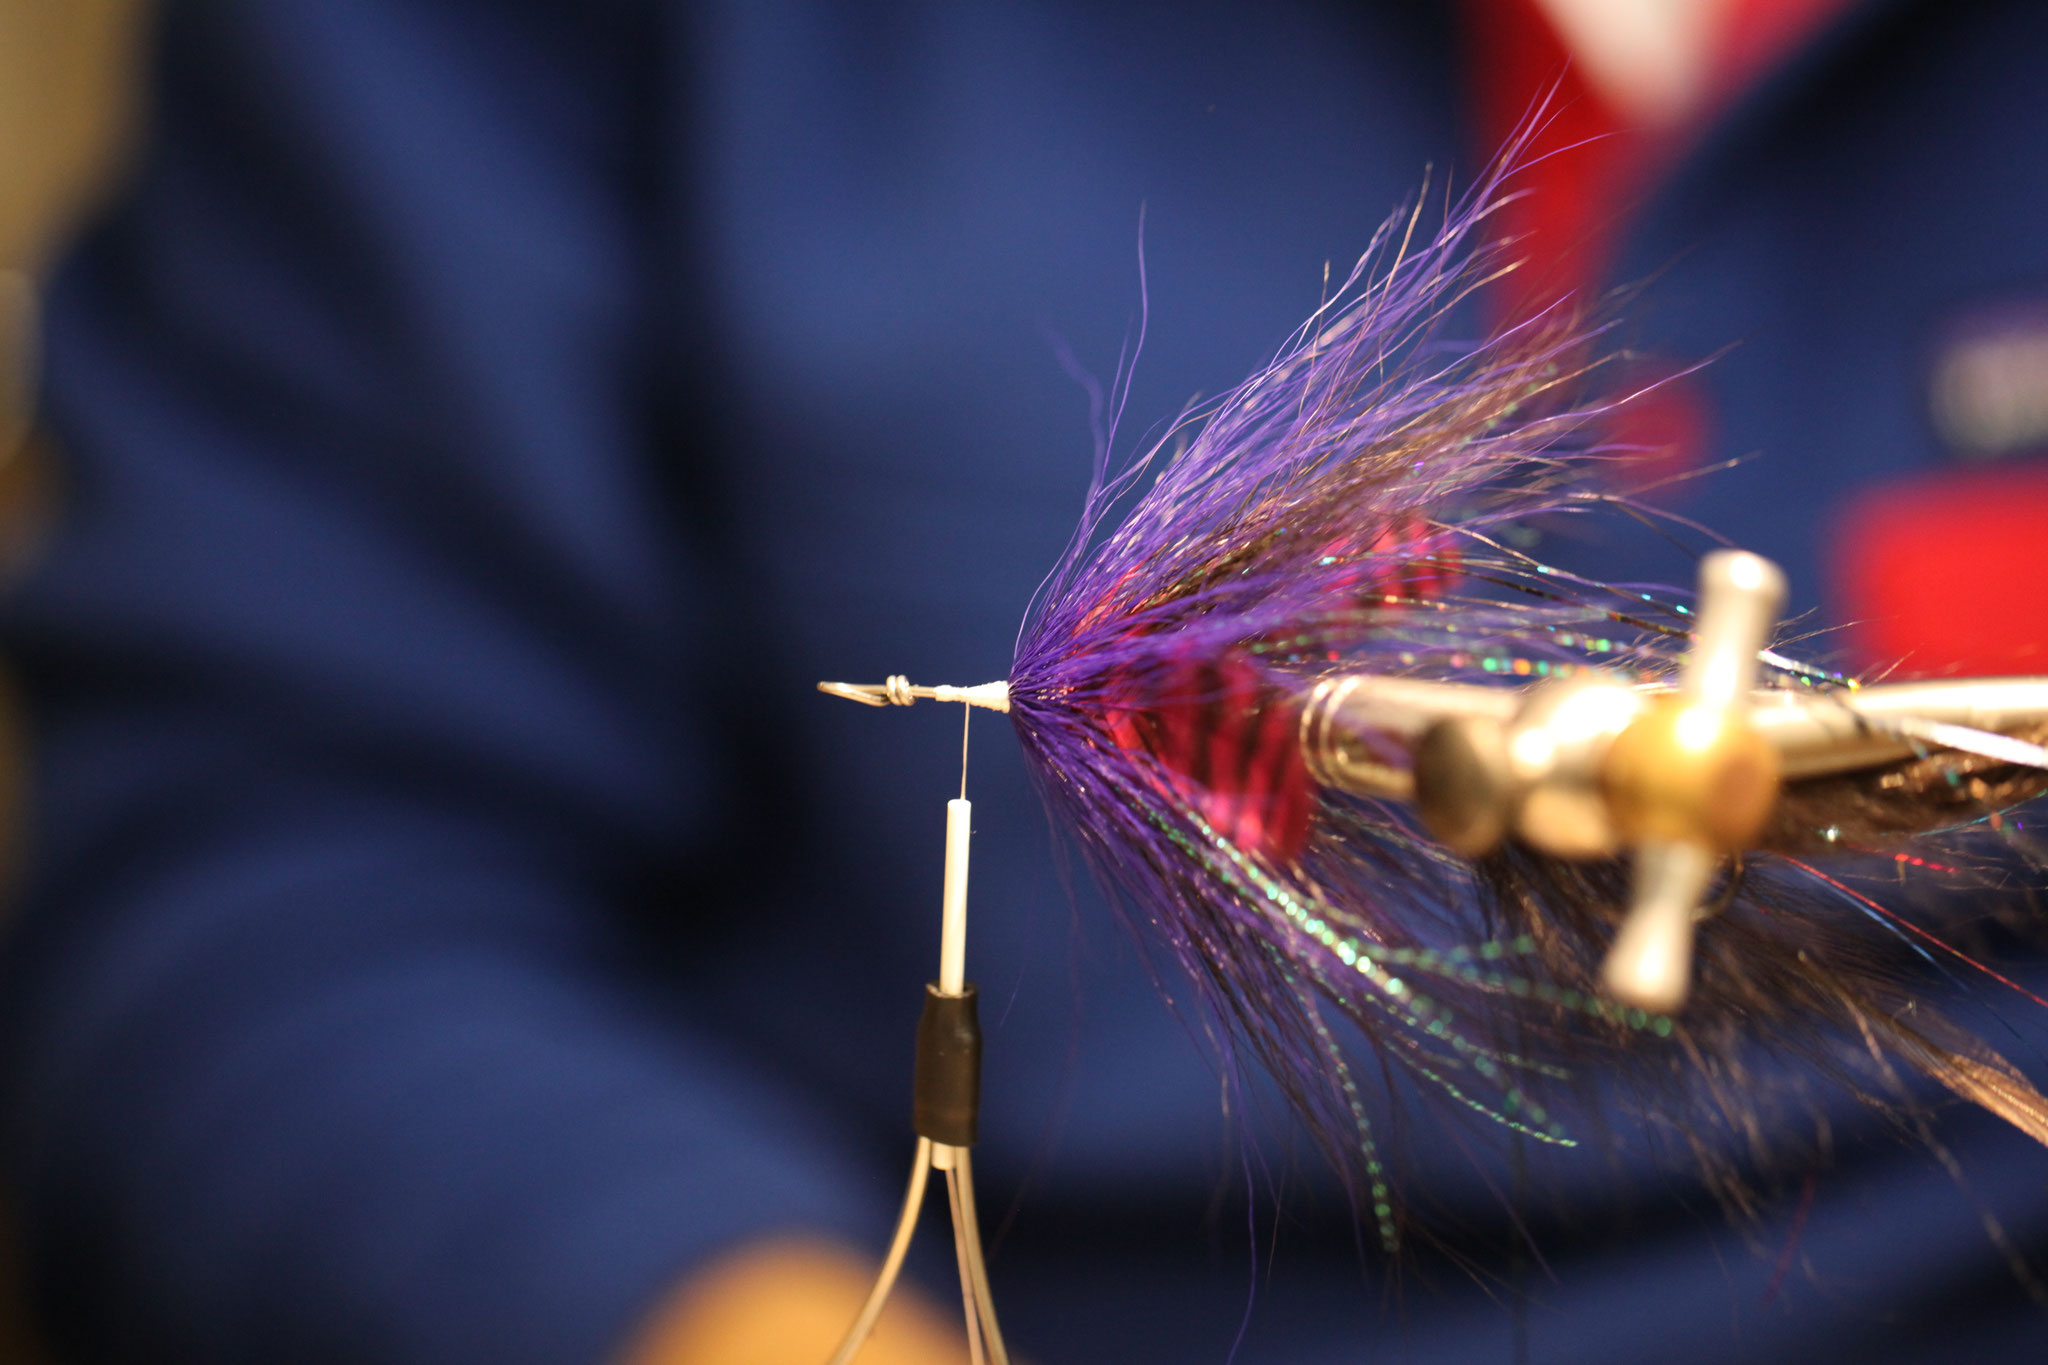 Another two bucktail collars, with some flashabou, kristal flash and one shorter feather on each side mixed in